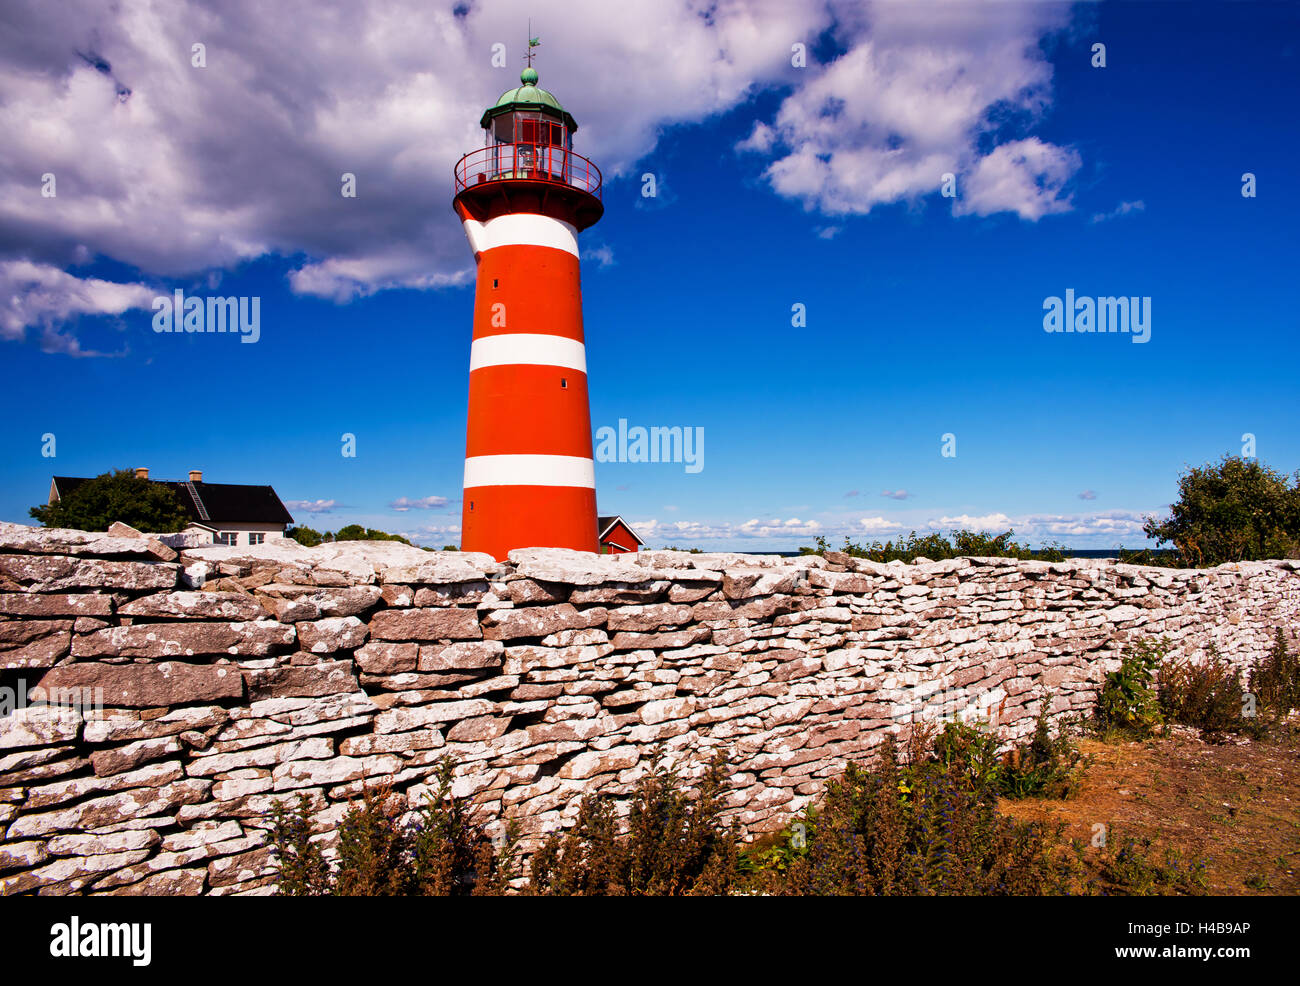 Lighthouse on the promontory Naersholmen, Gotland Island, Sweden - Stock Image